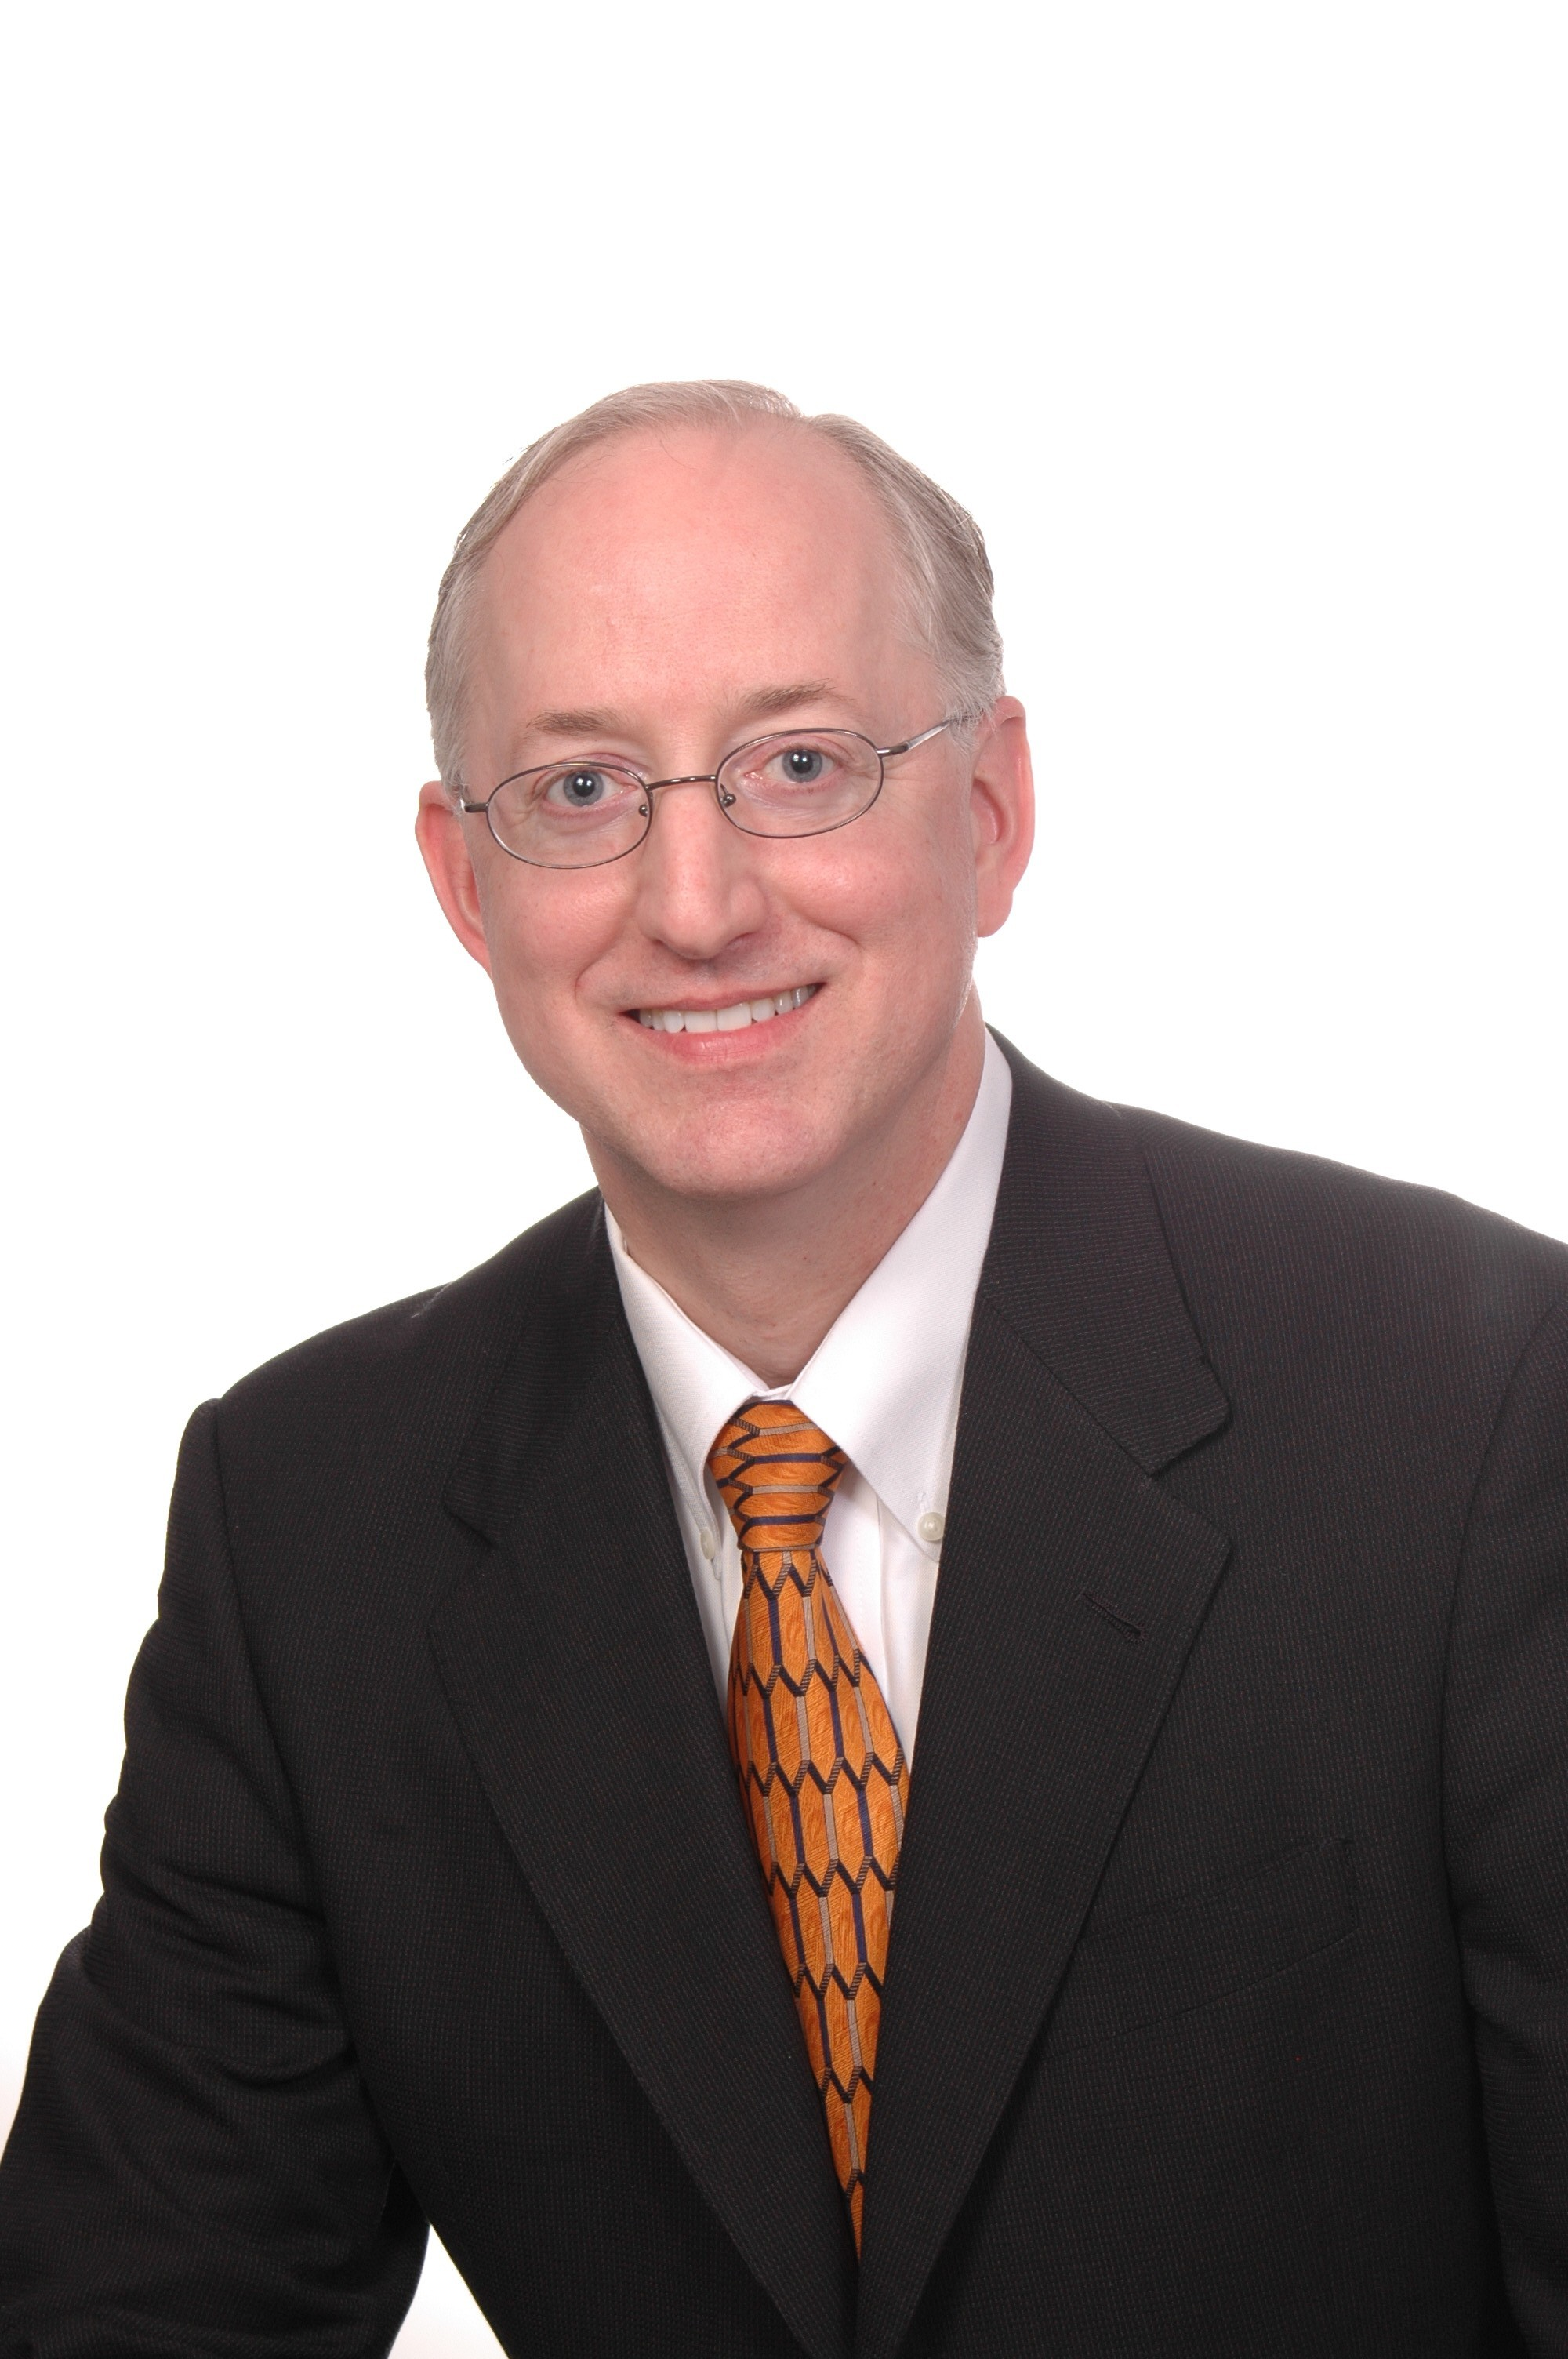 John Frymire, financial advisor Prospect KY